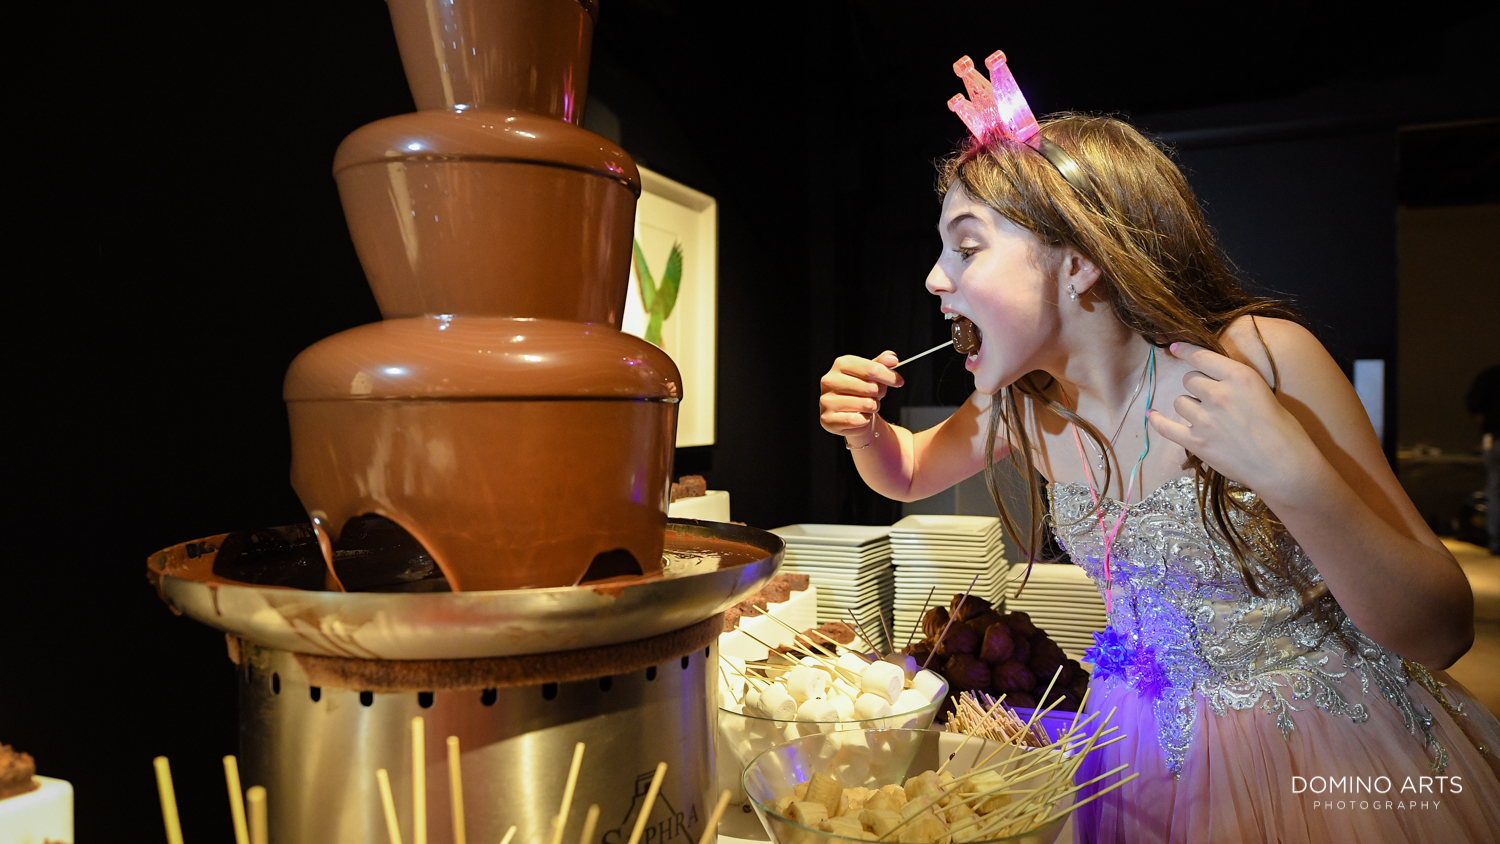 Chocolate Fondue fountain Mitzvah dessert pictures at Gallery of Amazing Things